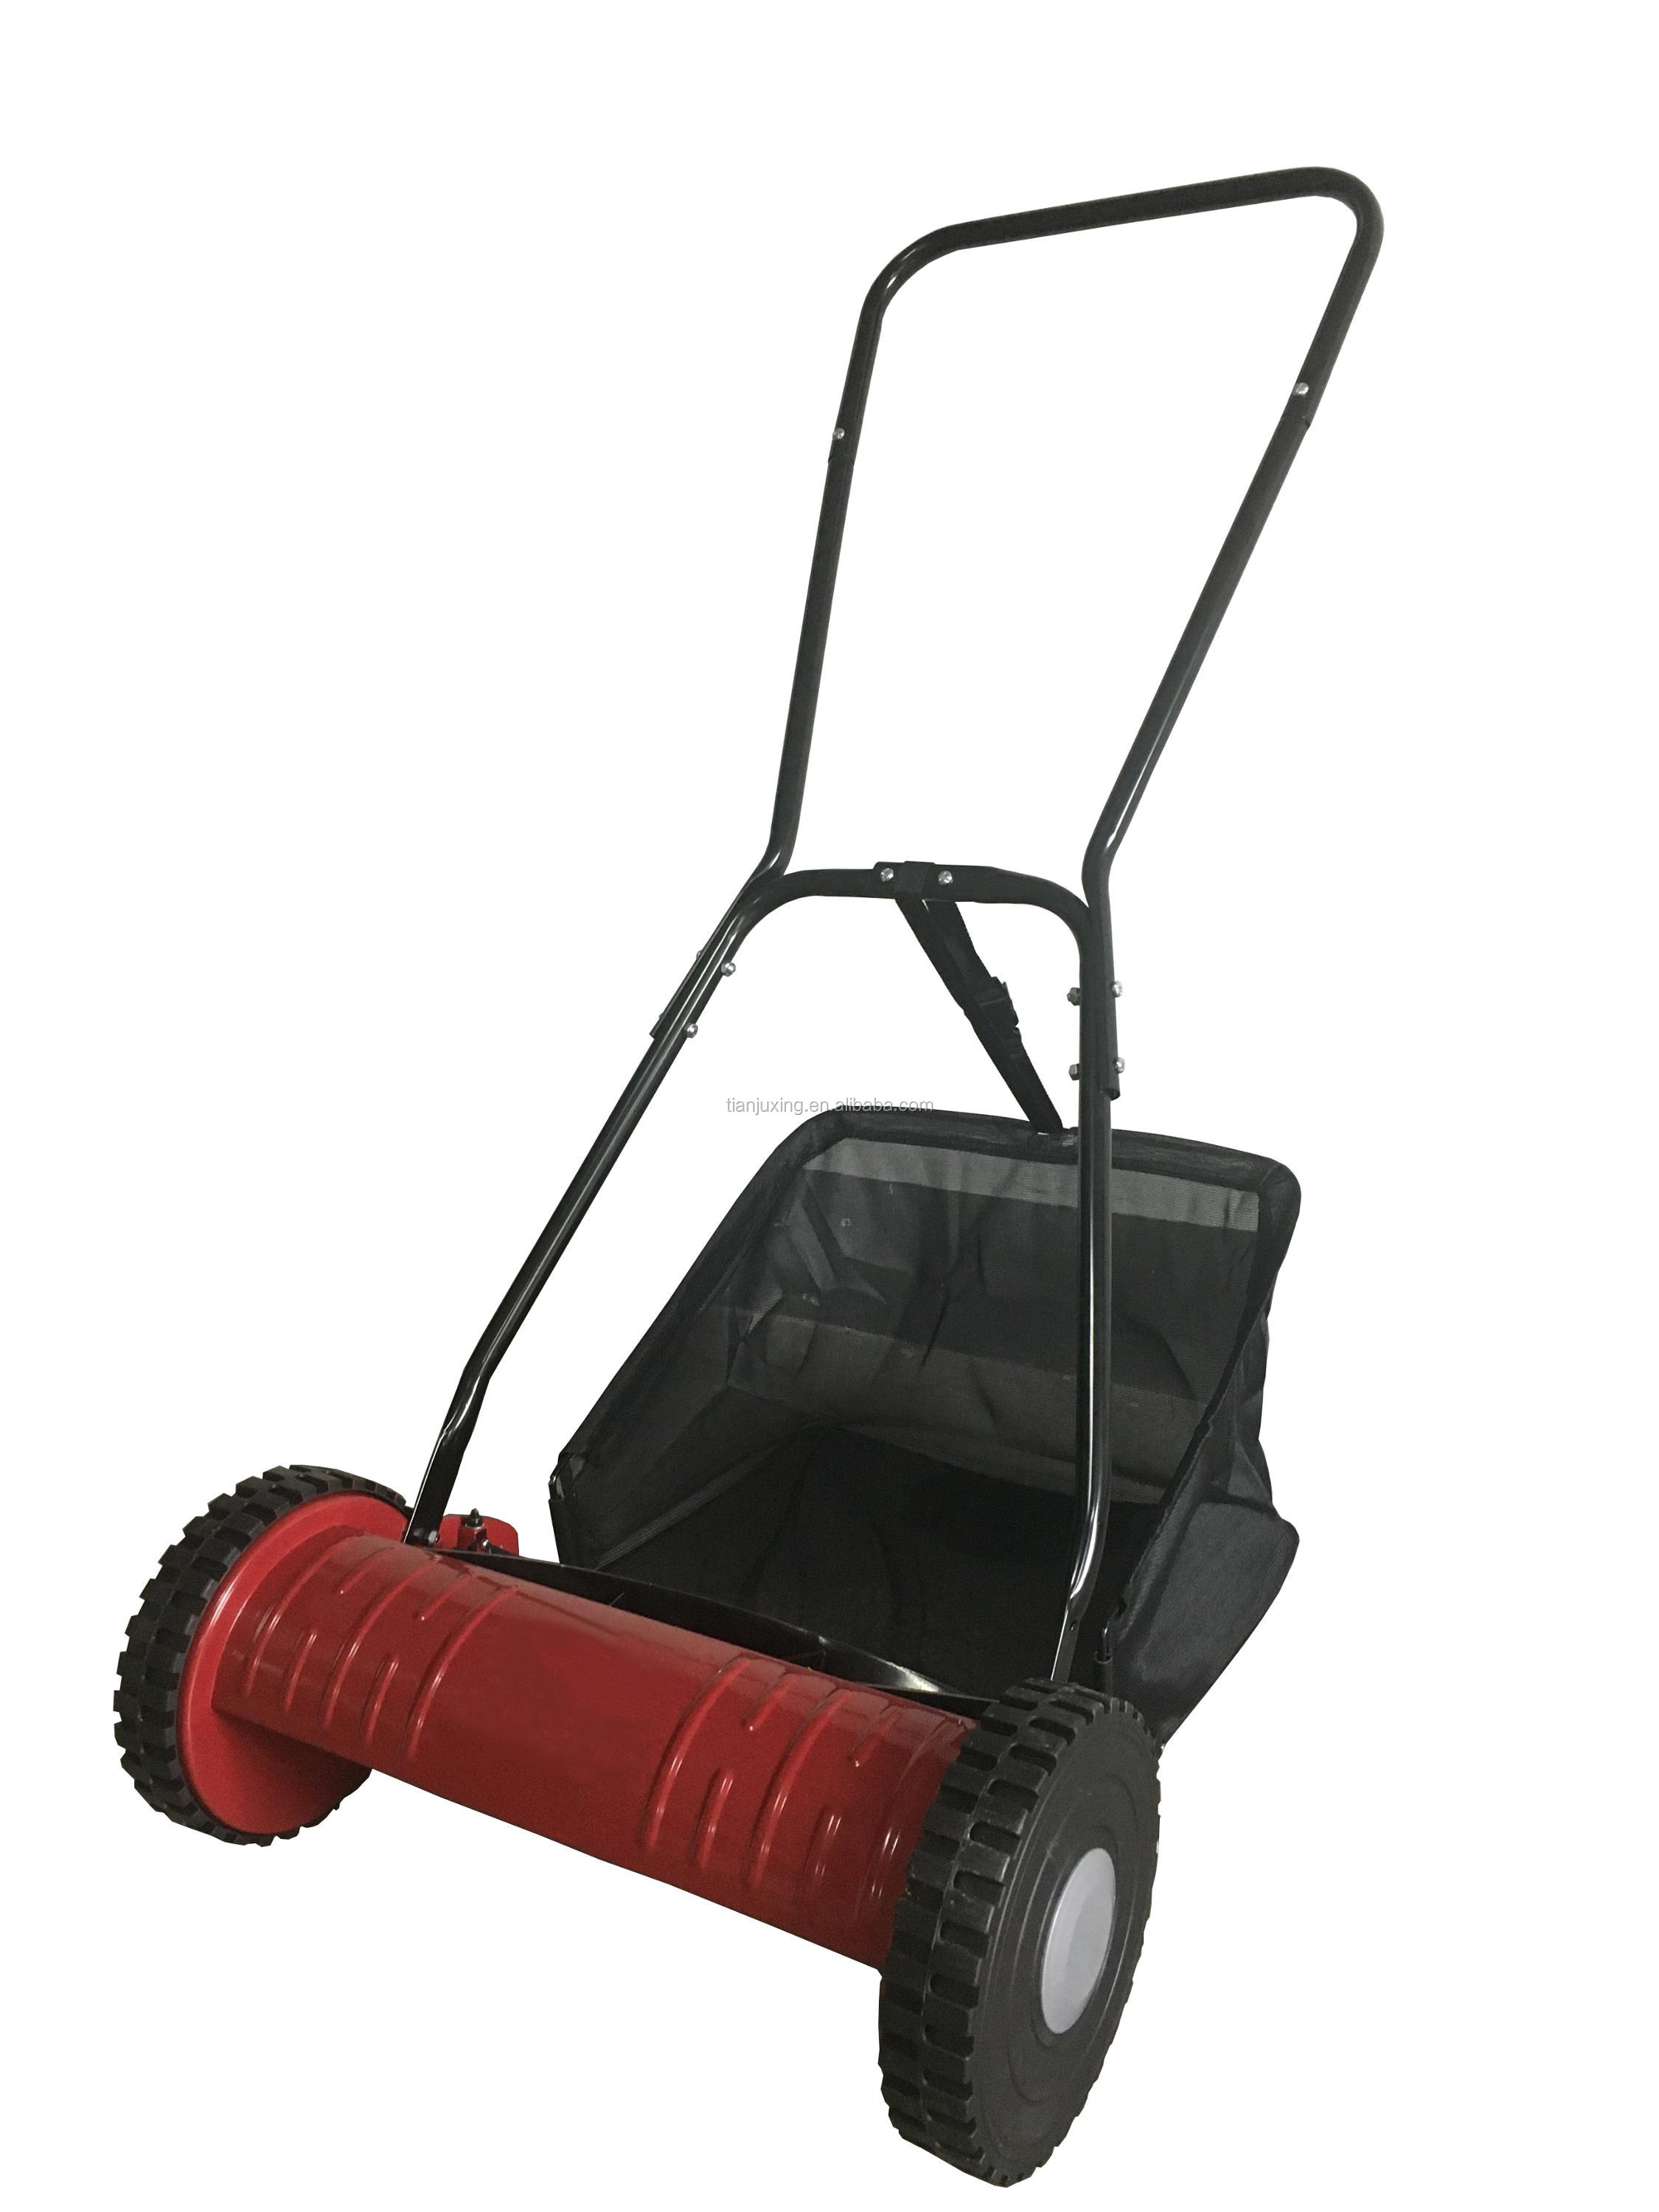 Grass cutting machine grass trimmer manual hand push lawn mower